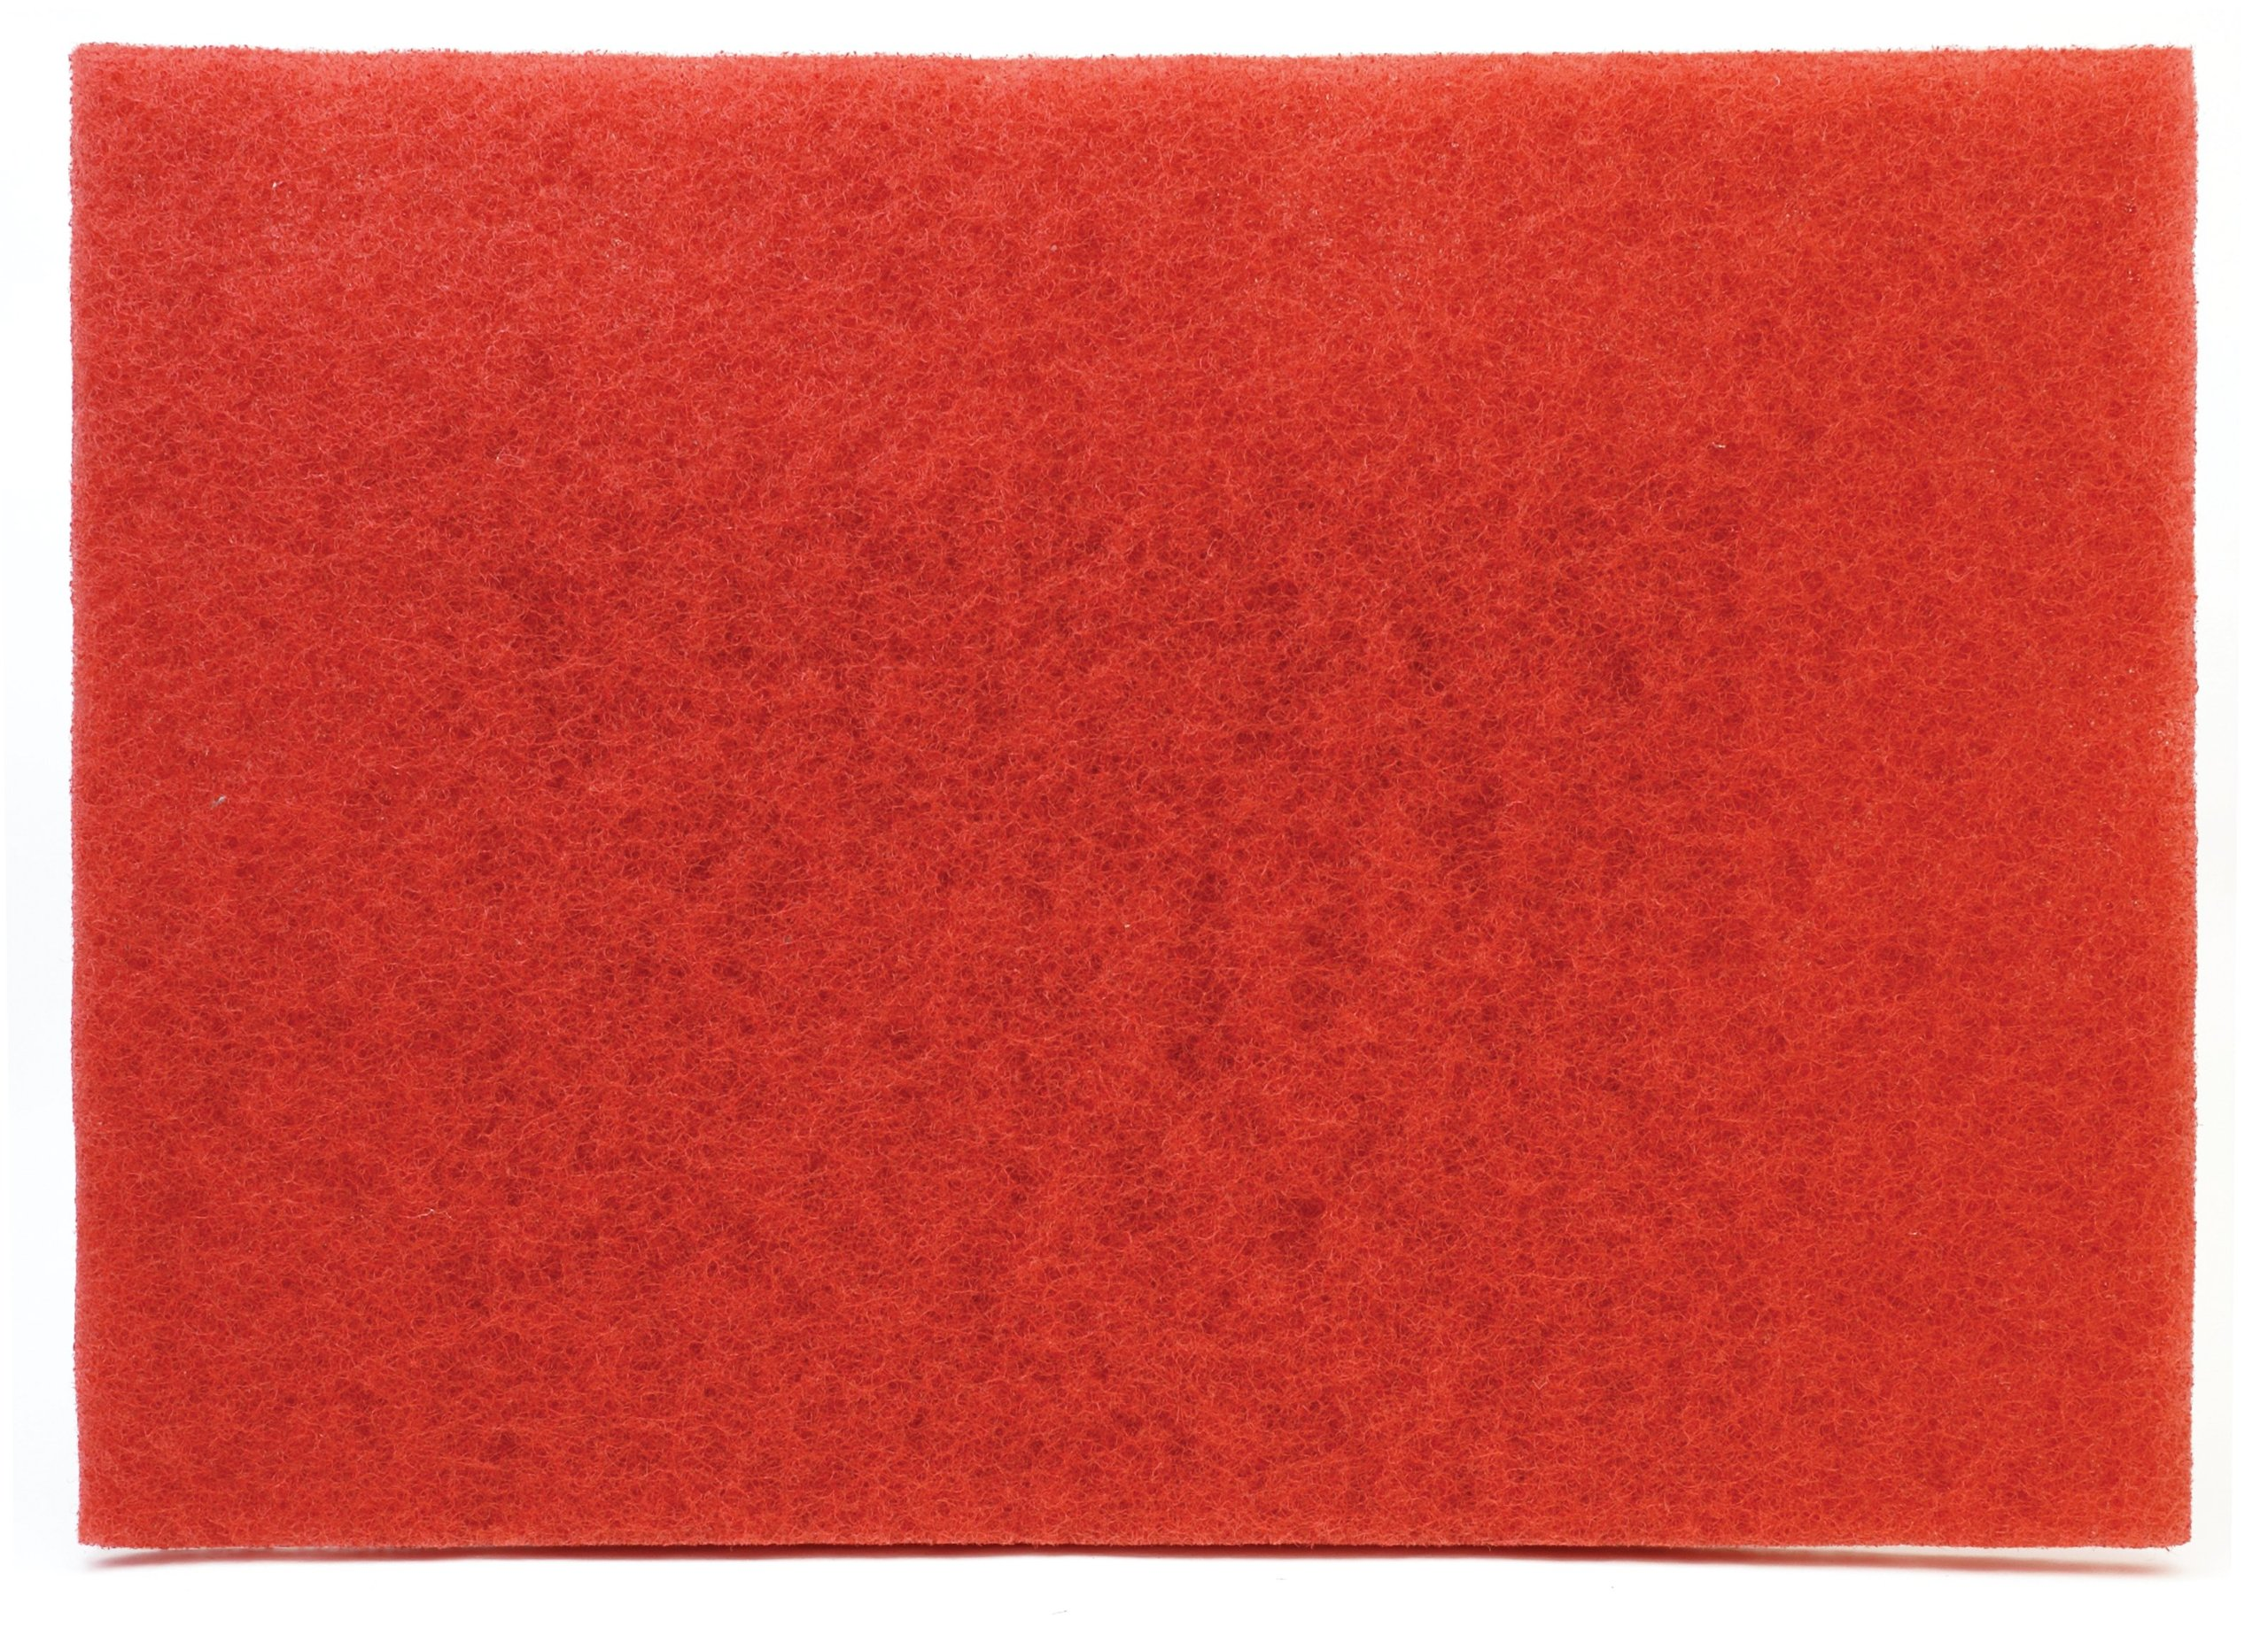 3M Red Buffer Pad 5100, 28'' x 14'' Floor Buffer, Machine Use (Case of 10)